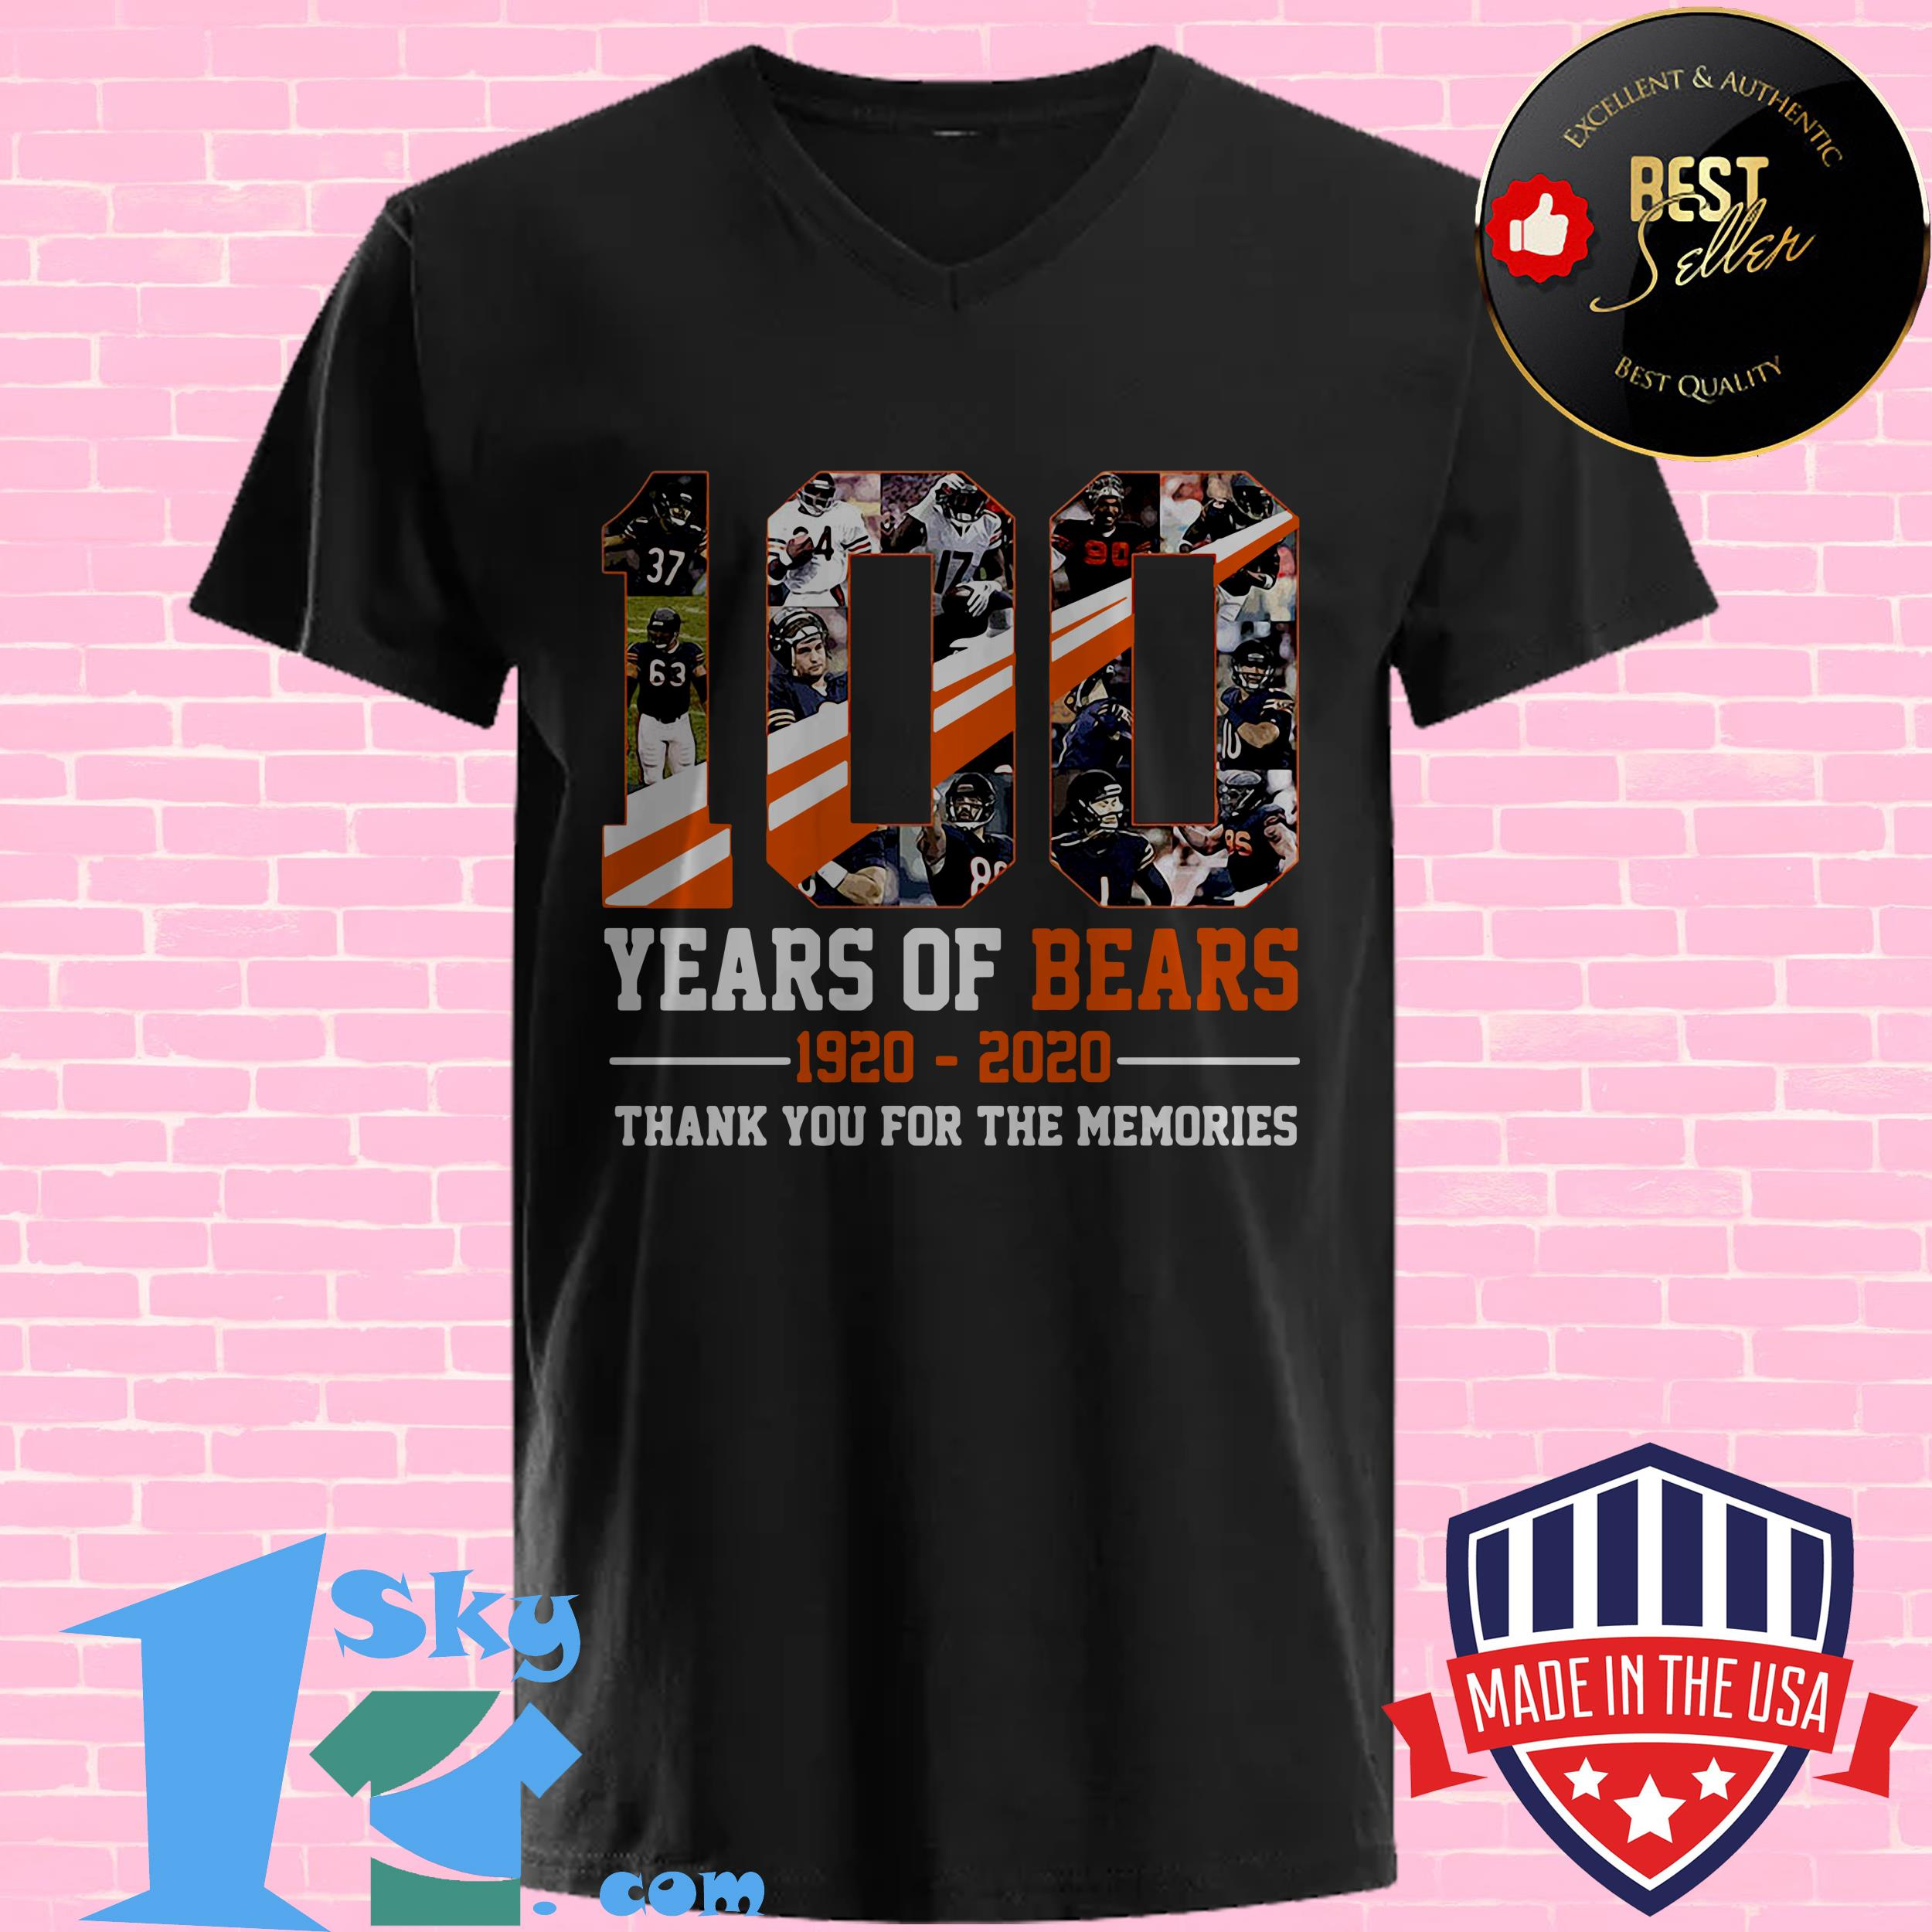 100 years of bears chicago 1920 2020 football jersey portrait customized v neck - 100 Years Of Bears Chicago 1920-2020 Football Jersey Portrait Customized shirt